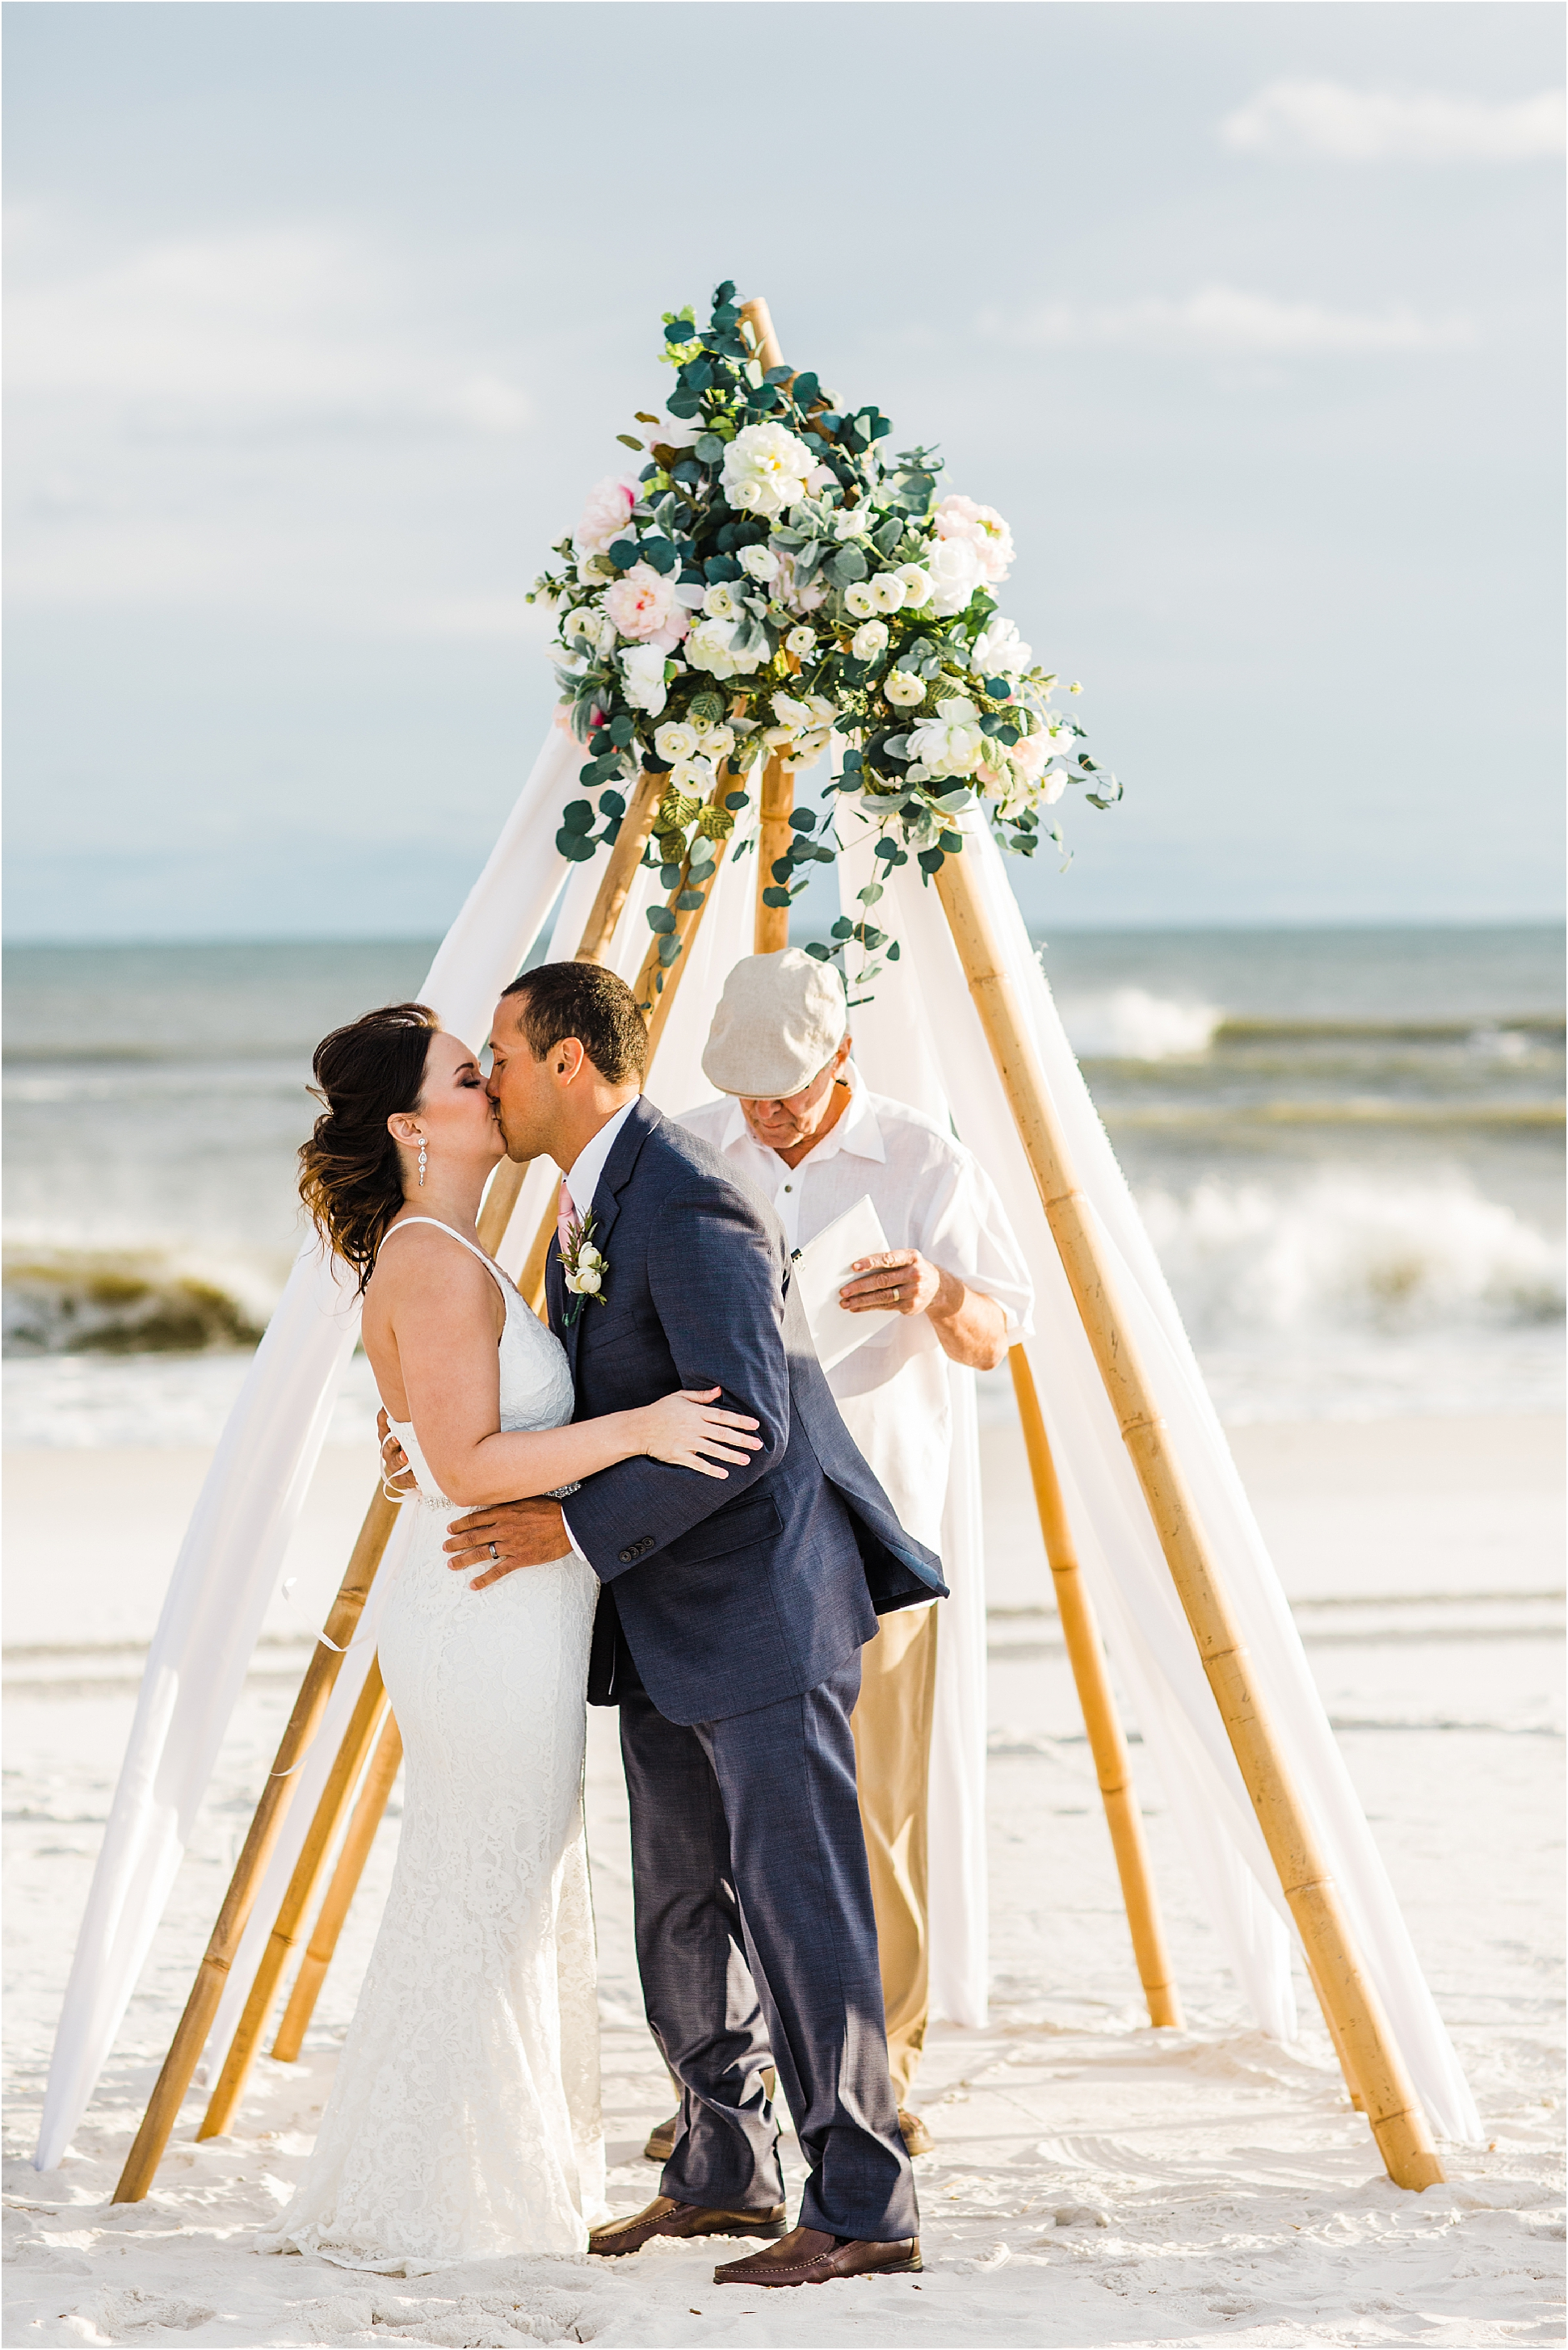 Small Weddings in Gulf Shores